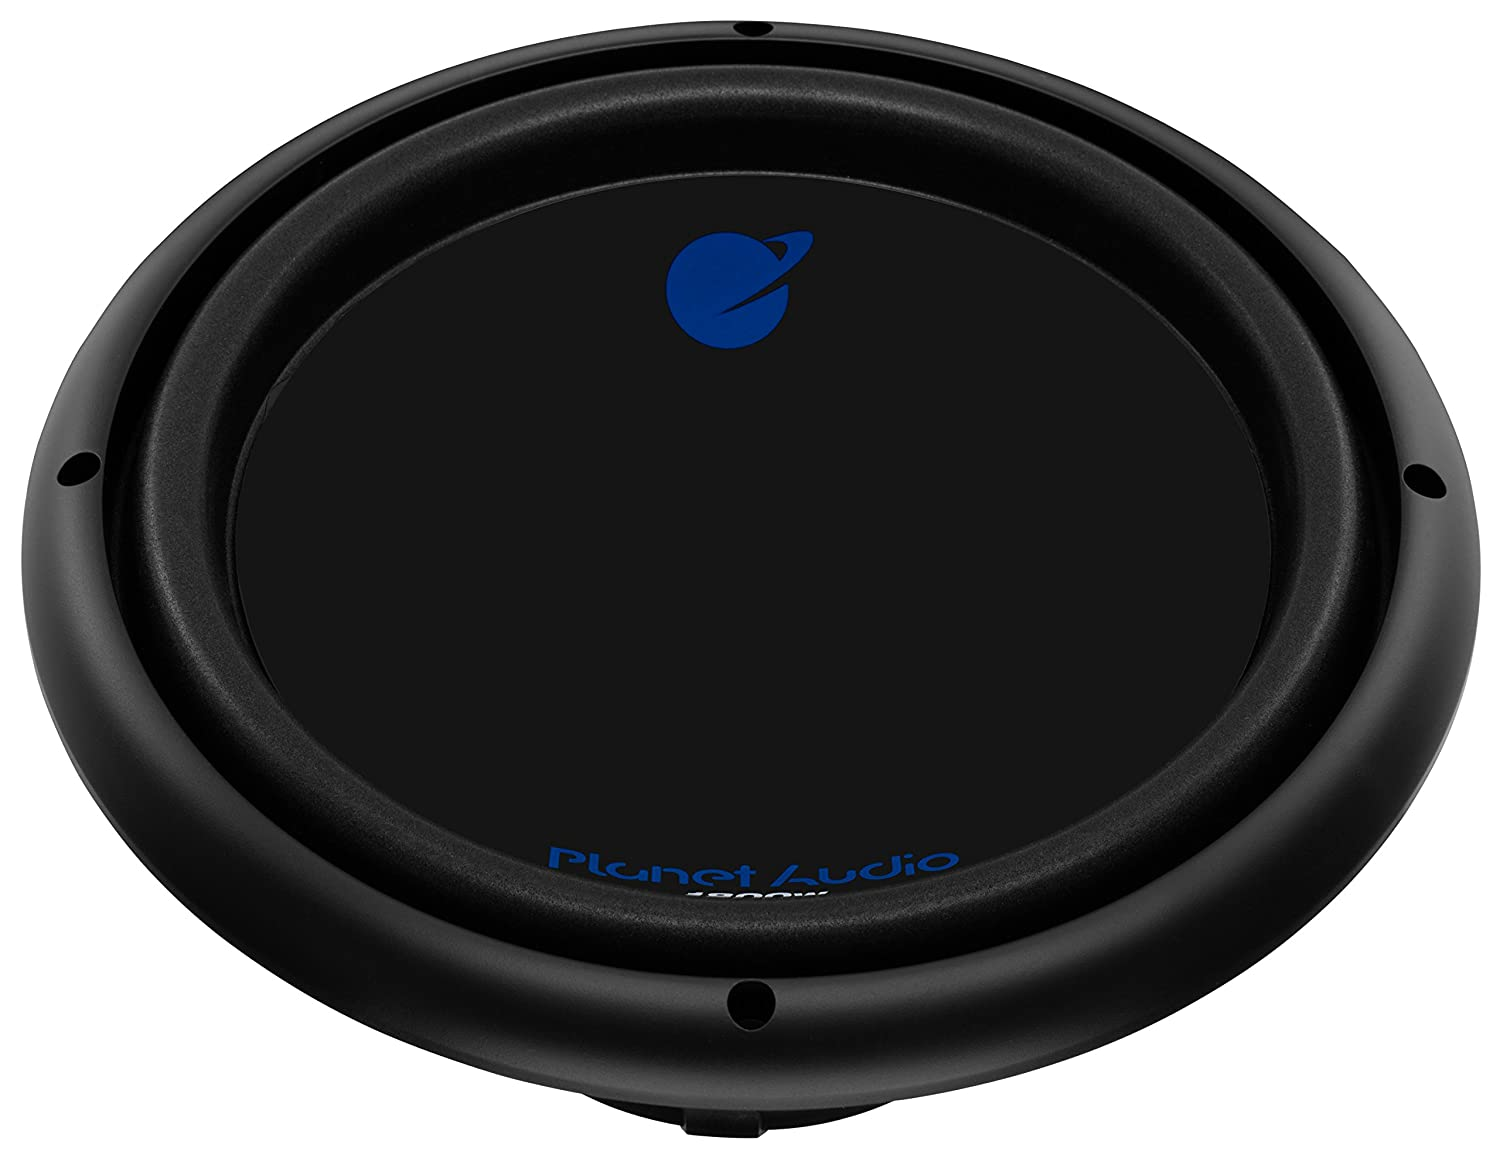 Planet Audio Ac12d 1800 Watt 12 Inch Dual 4 Ohm Voice Rockford Fosgate 8 Subwoofer Coil Car Electronics